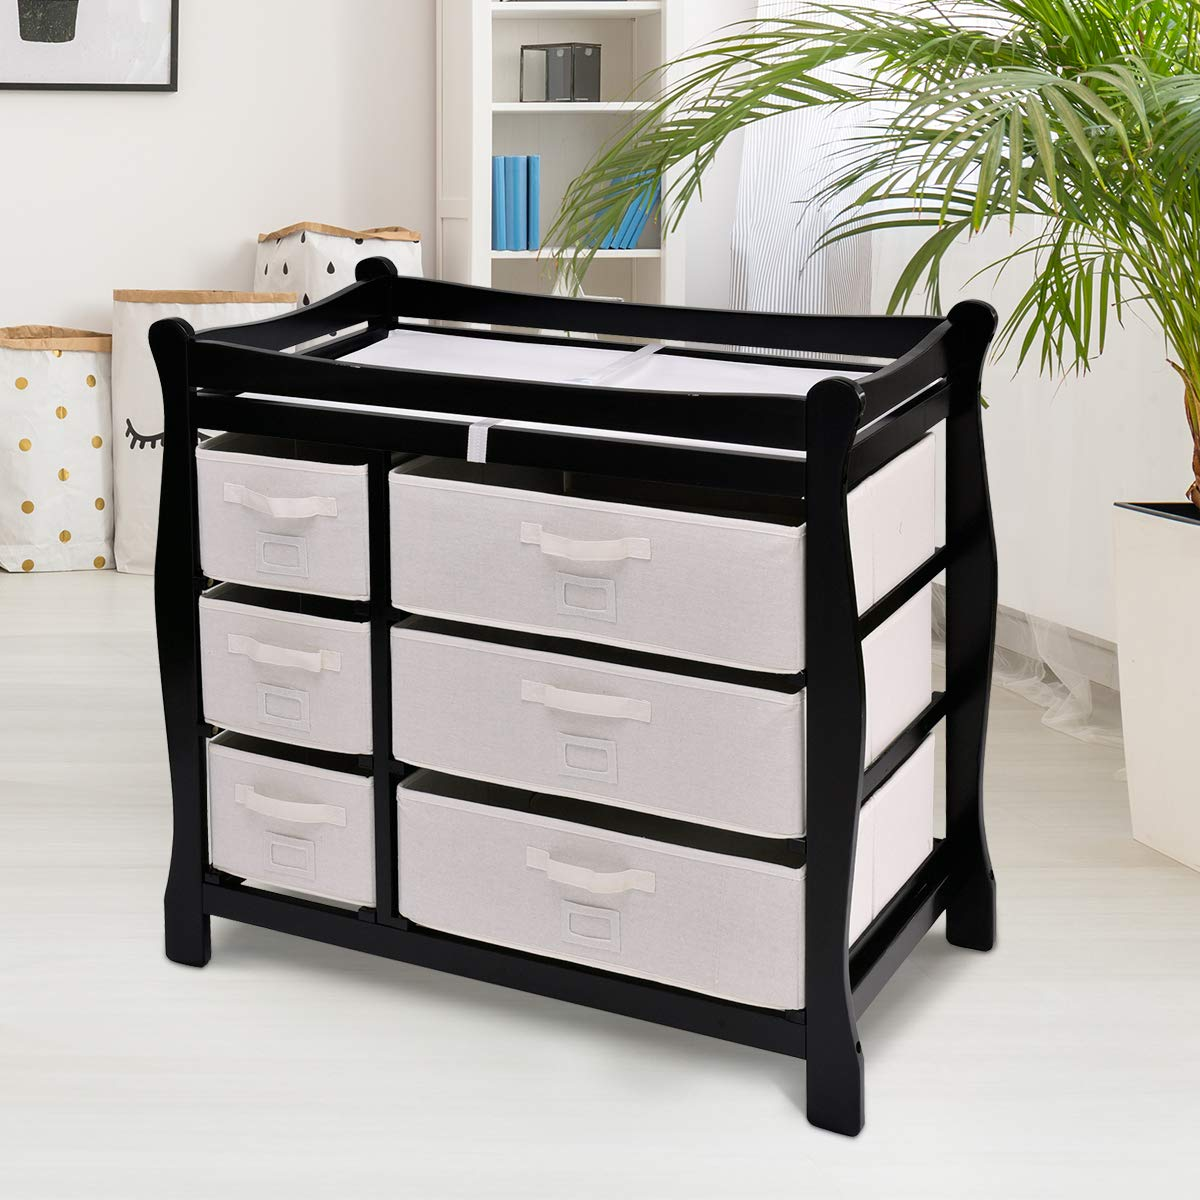 Wine Costzon Baby Changing Table Infant Diaper Nursery Station w//6 Basket Storage Drawers